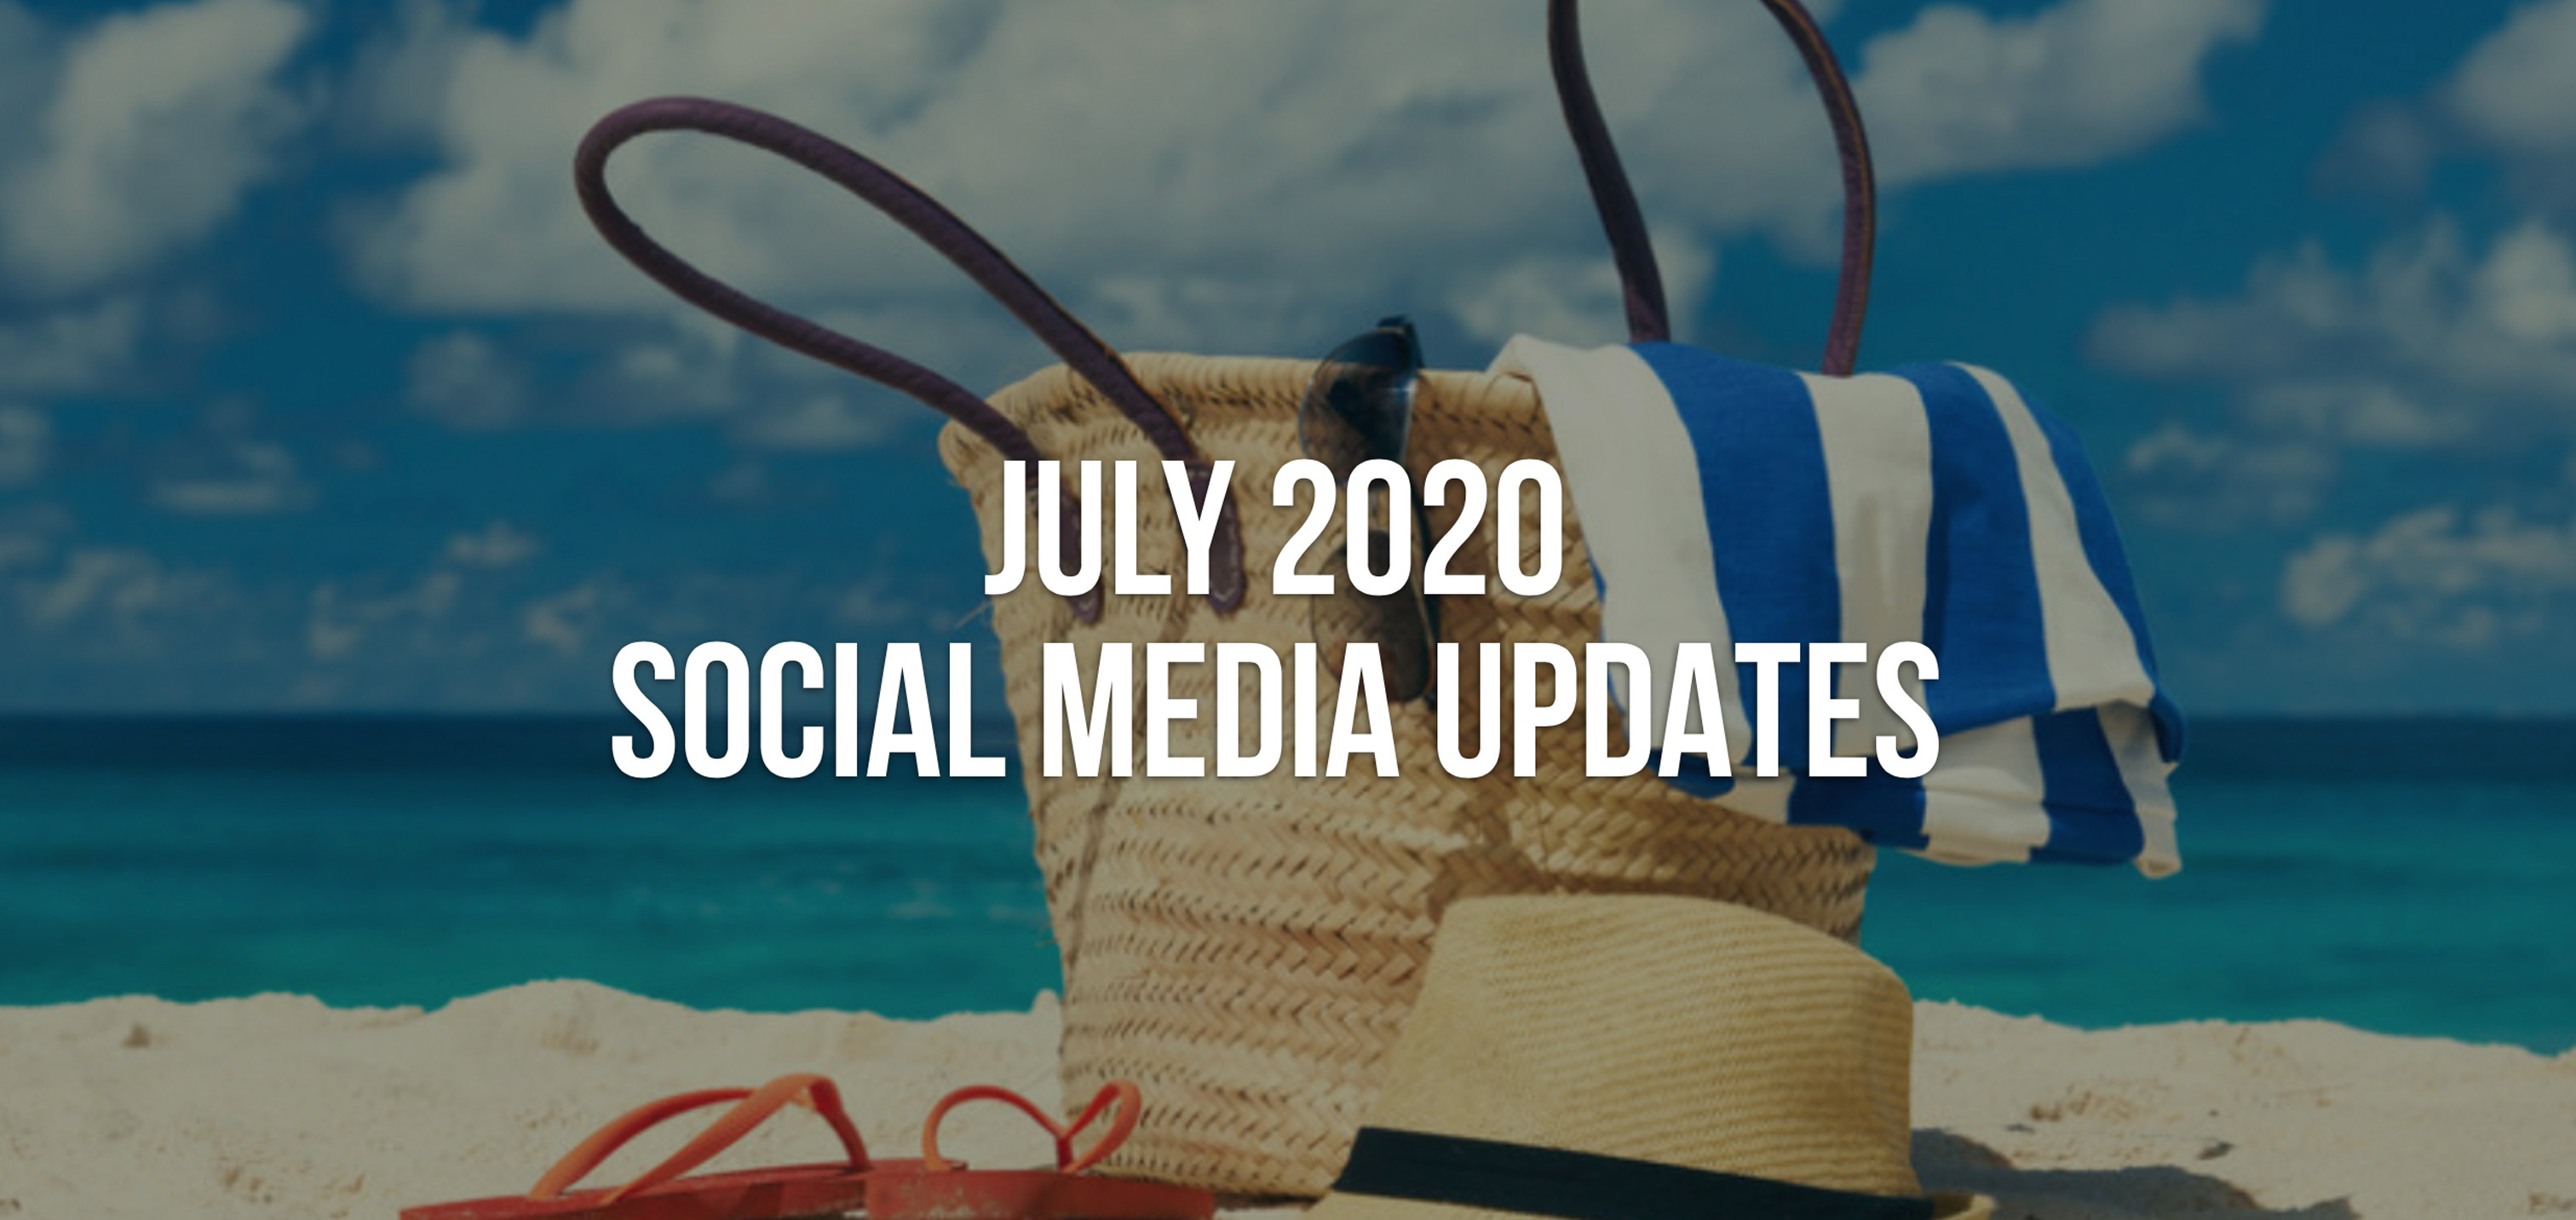 July 2020 Social Media News & Updates